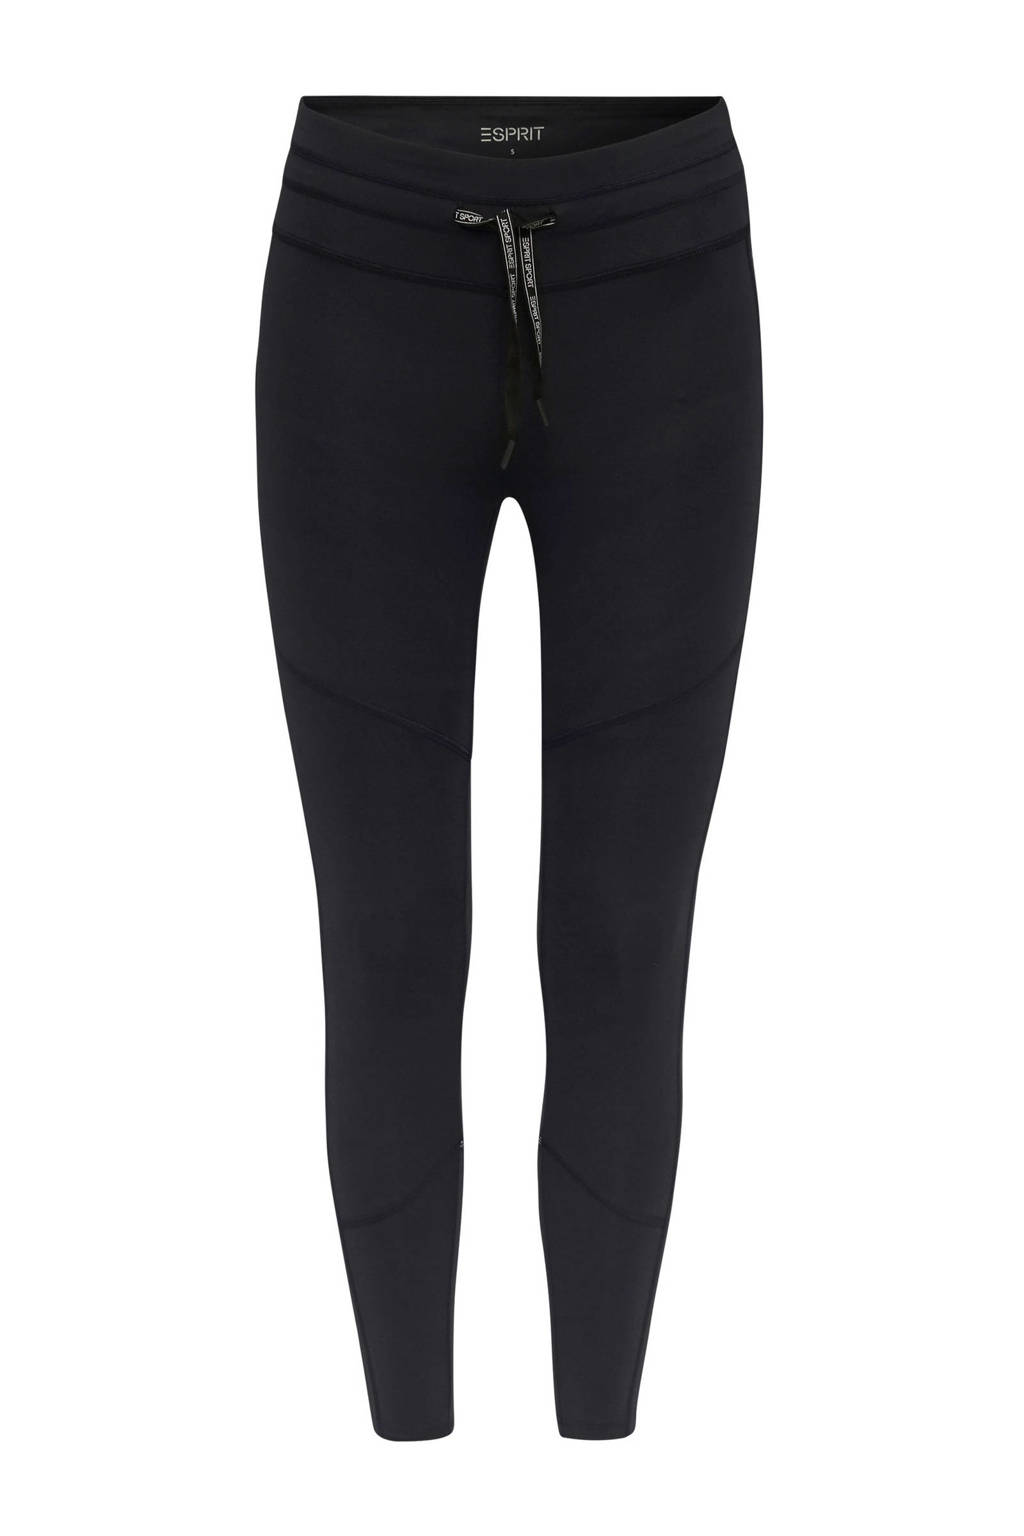 ESPRIT Women Sports 7/8 sportbroek zwart, Zwart